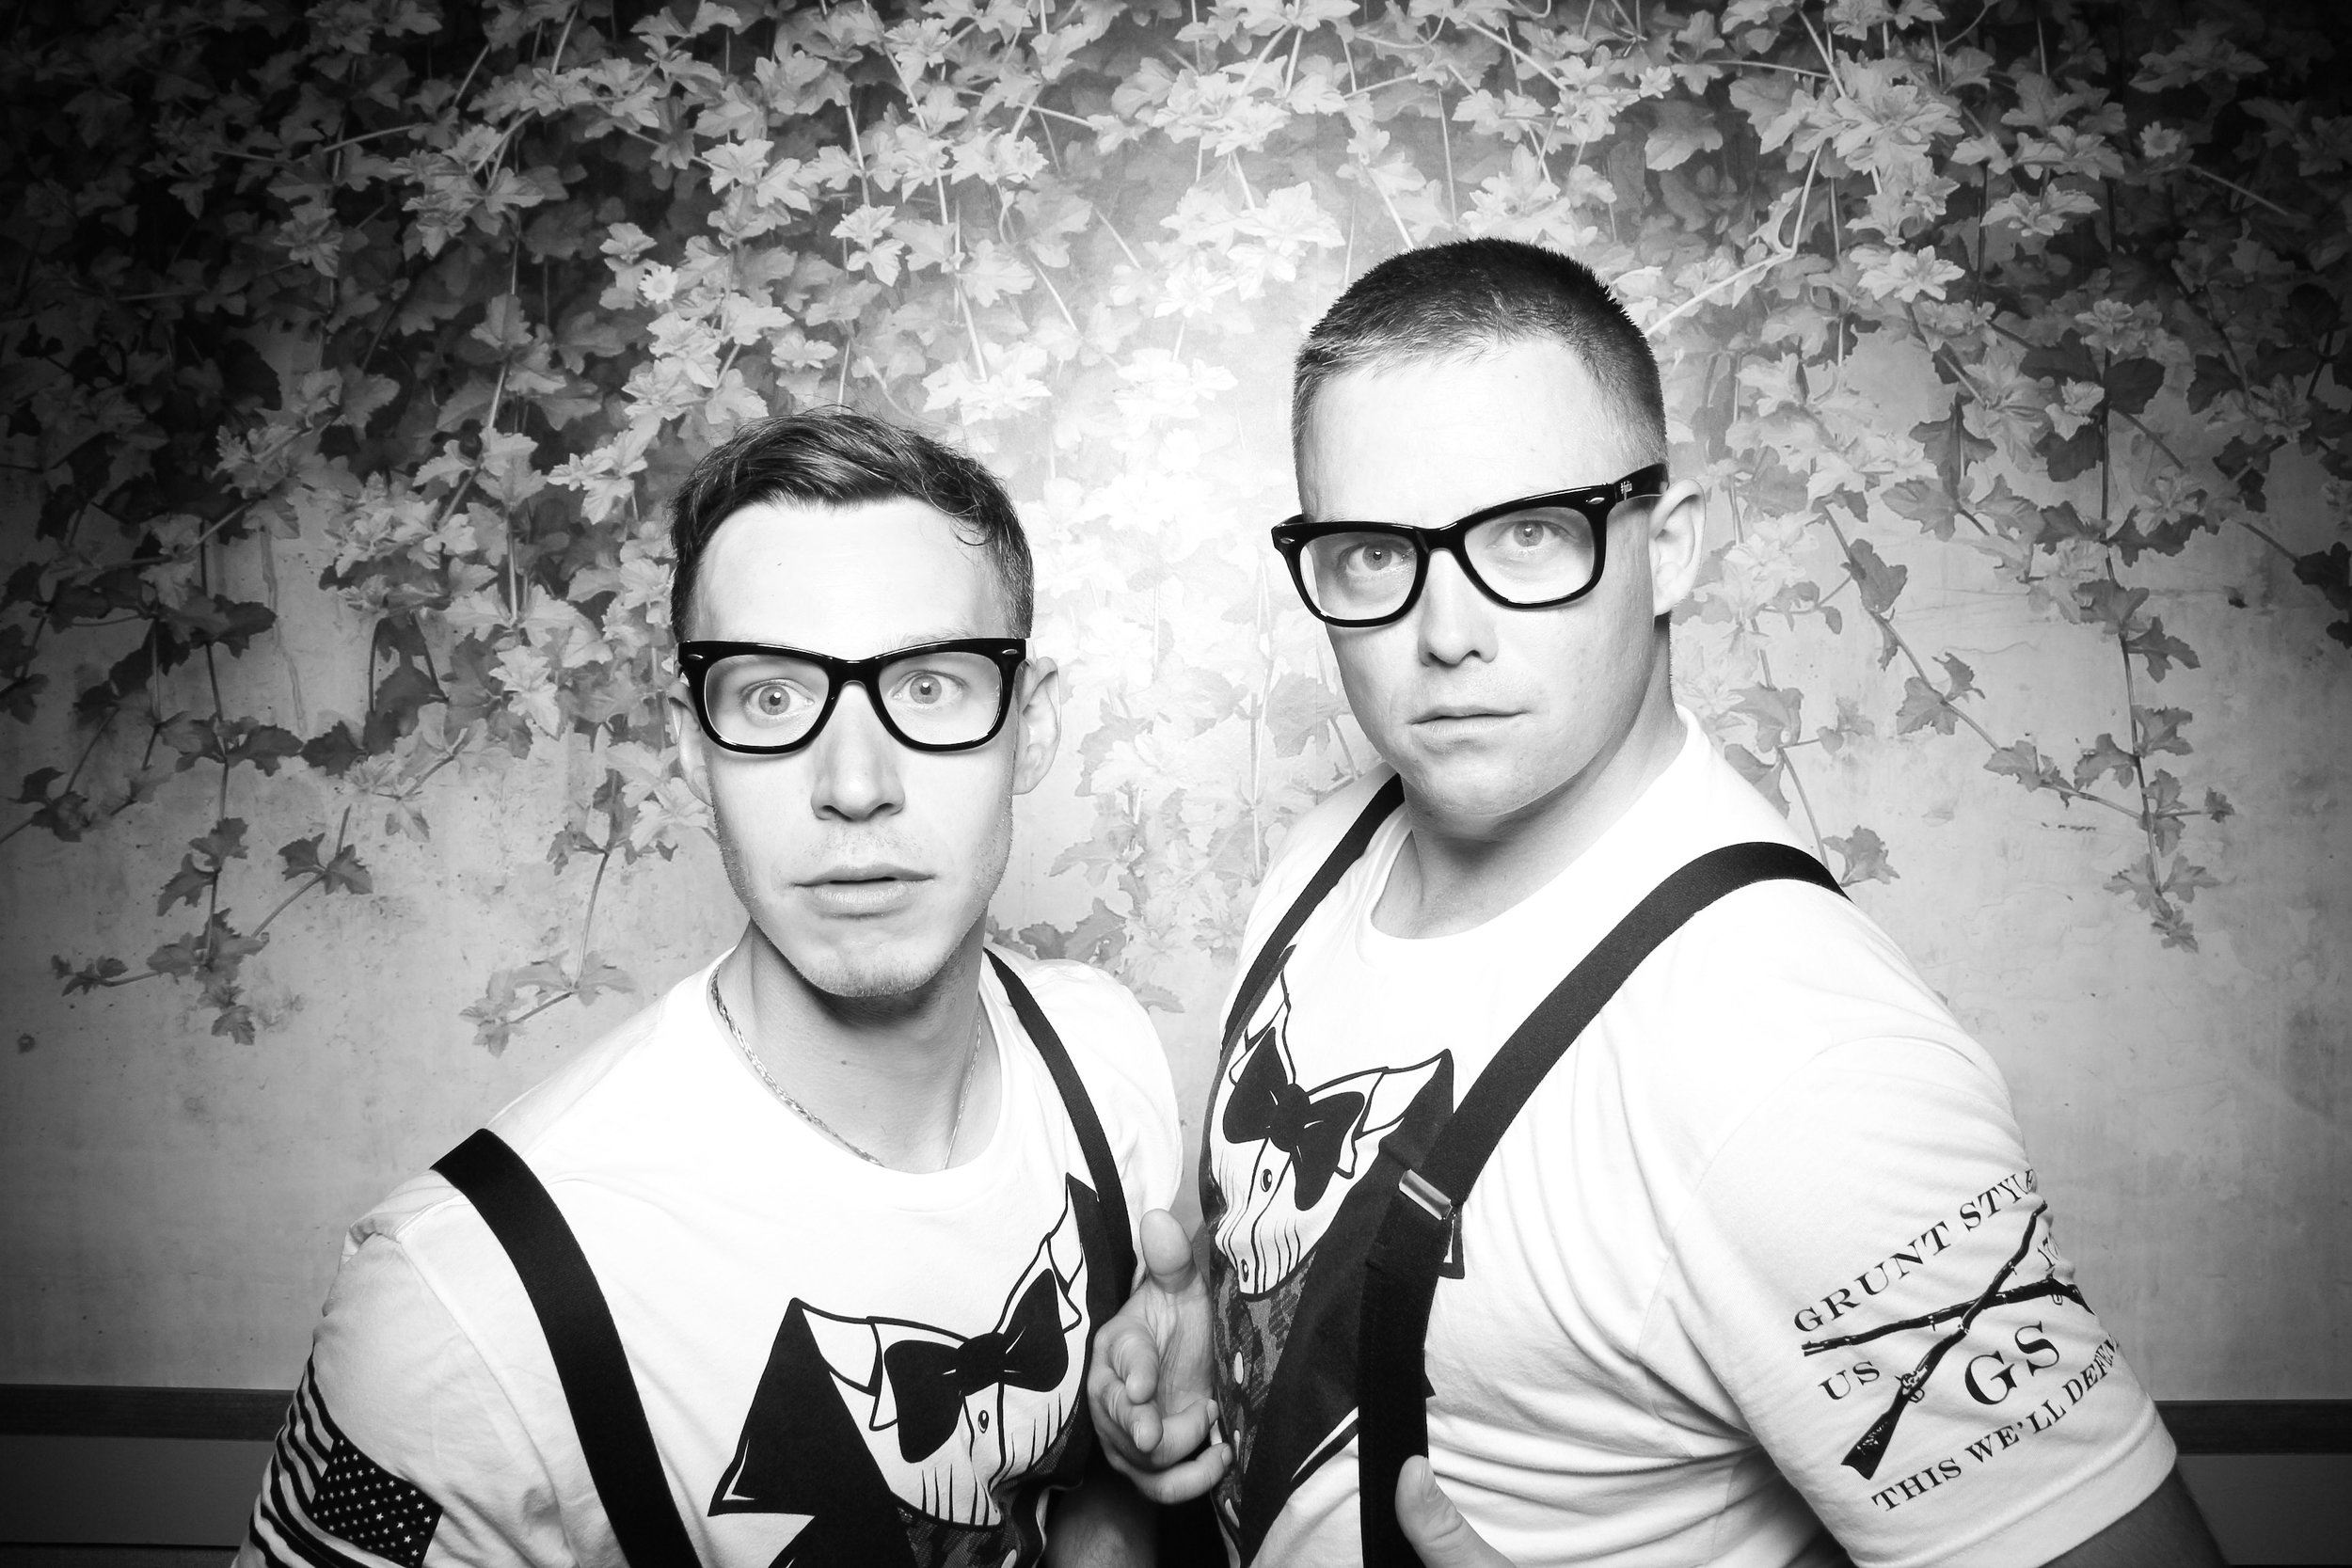 Randall_Oaks_Country_Club_Wedding_West_Dundee_Photo_Booth_27.jpg